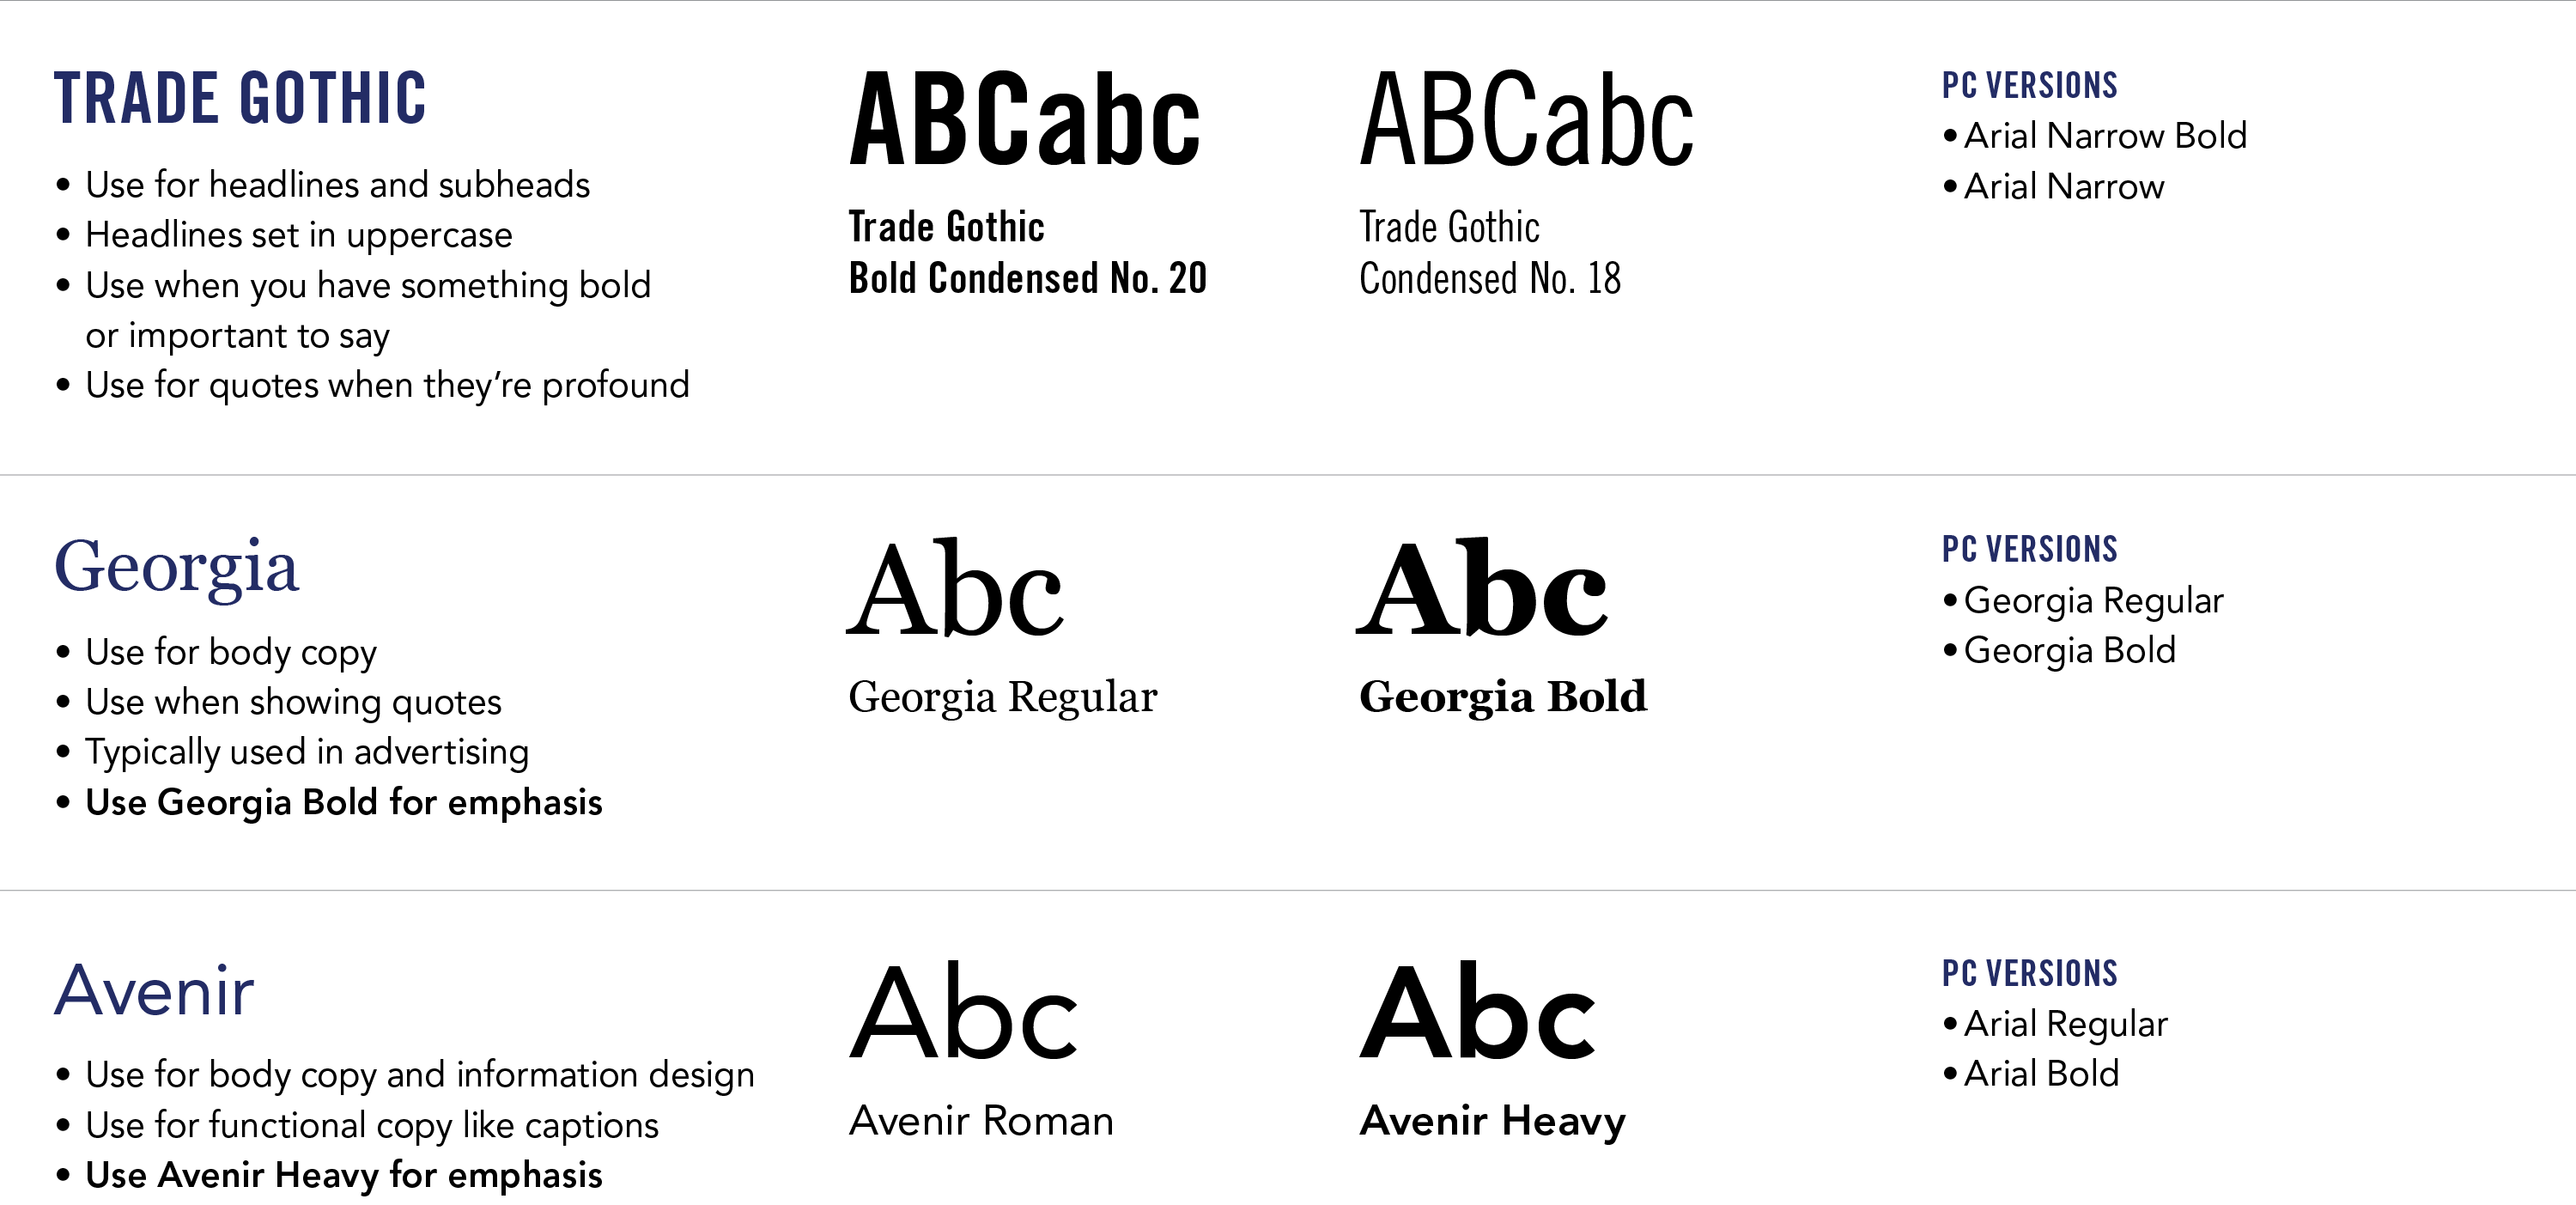 Children's typography guidelines -- Trade Gothic, Georgia, Avenir typefaces